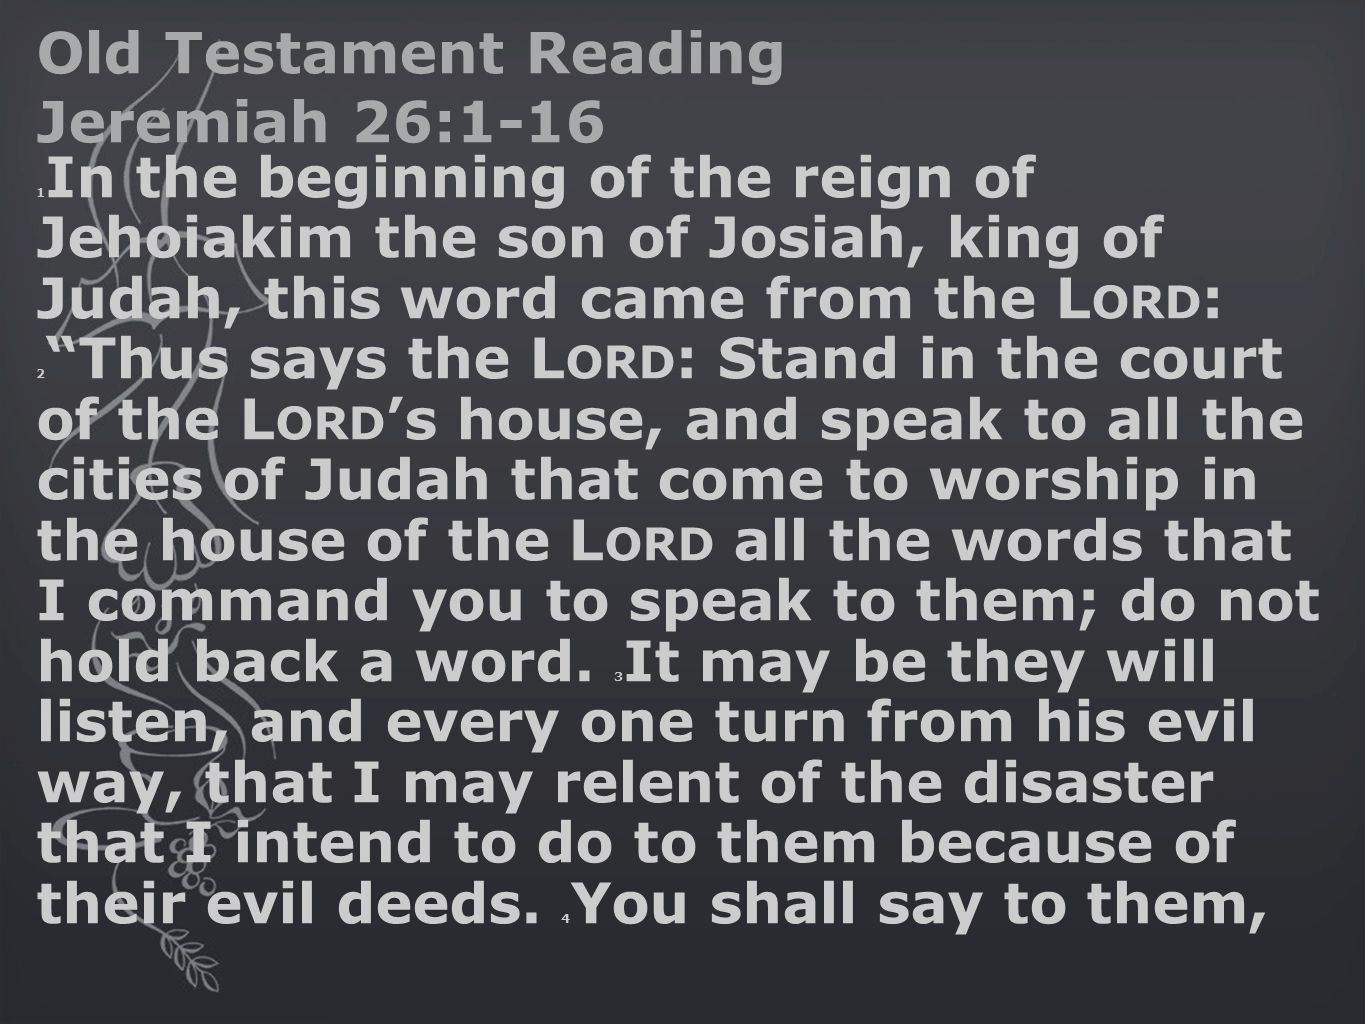 Old Testament Reading Jeremiah 26:1-16 1 In the beginning of the reign of Jehoiakim the son of Josiah, king of Judah, this word came from the L ORD :